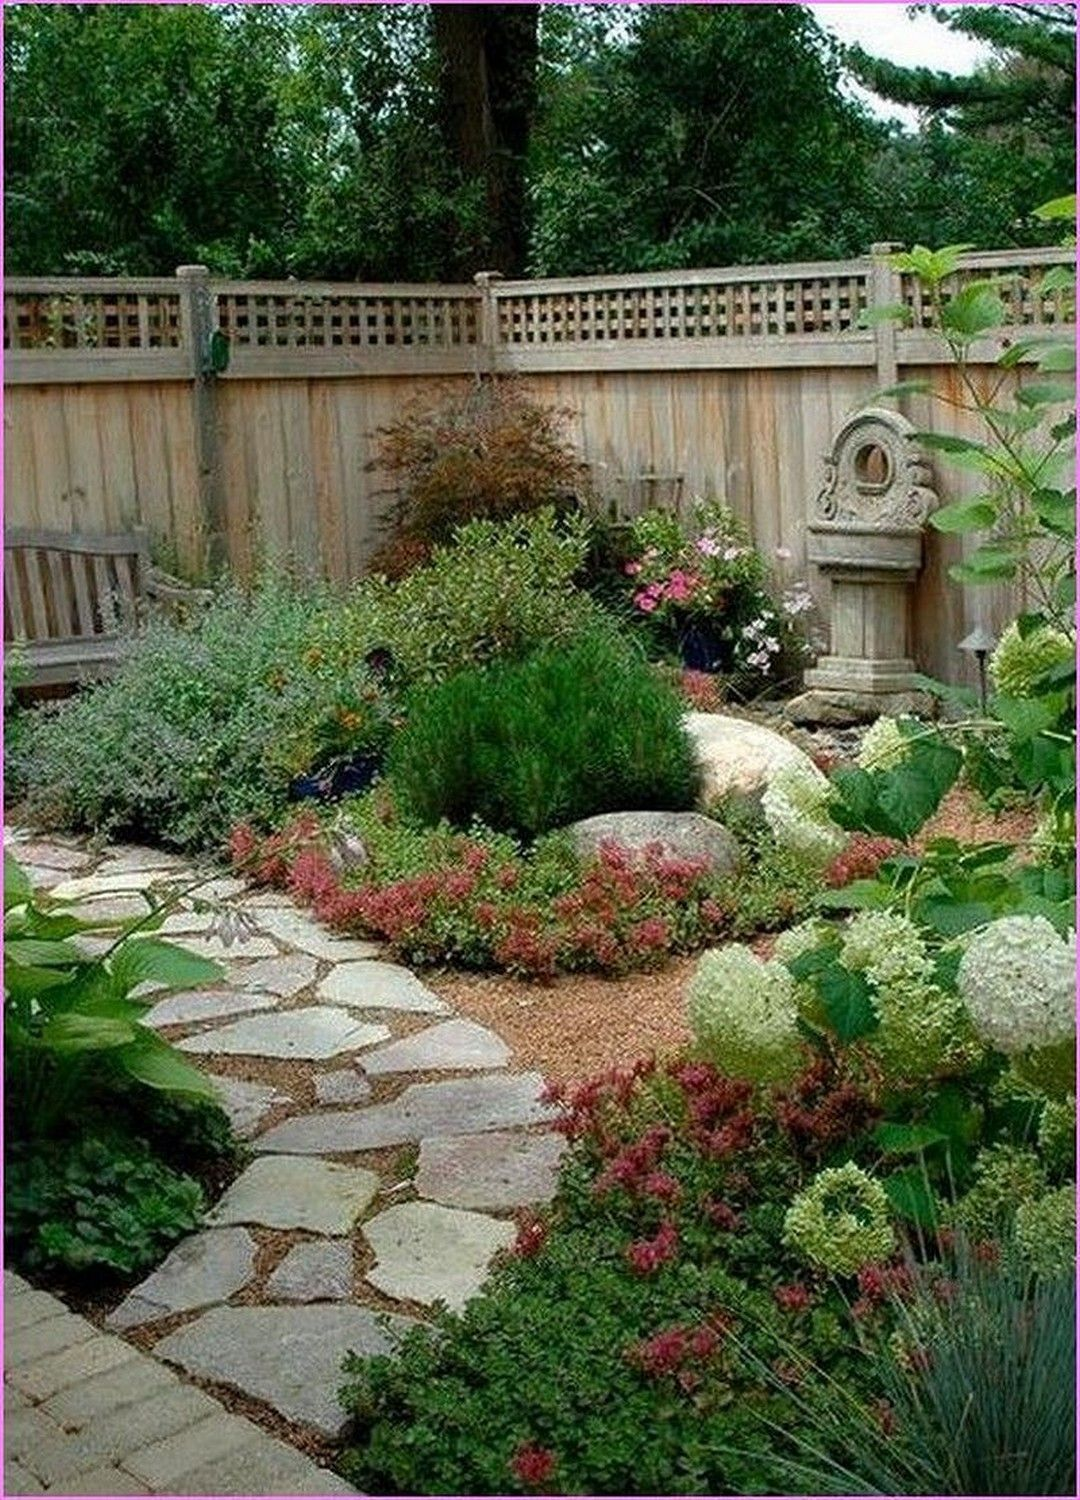 26 Backyard Ideas That Are Simple And Budget Friendly Small Front Yard Landscaping Small Yard Landscaping Outdoor Landscaping